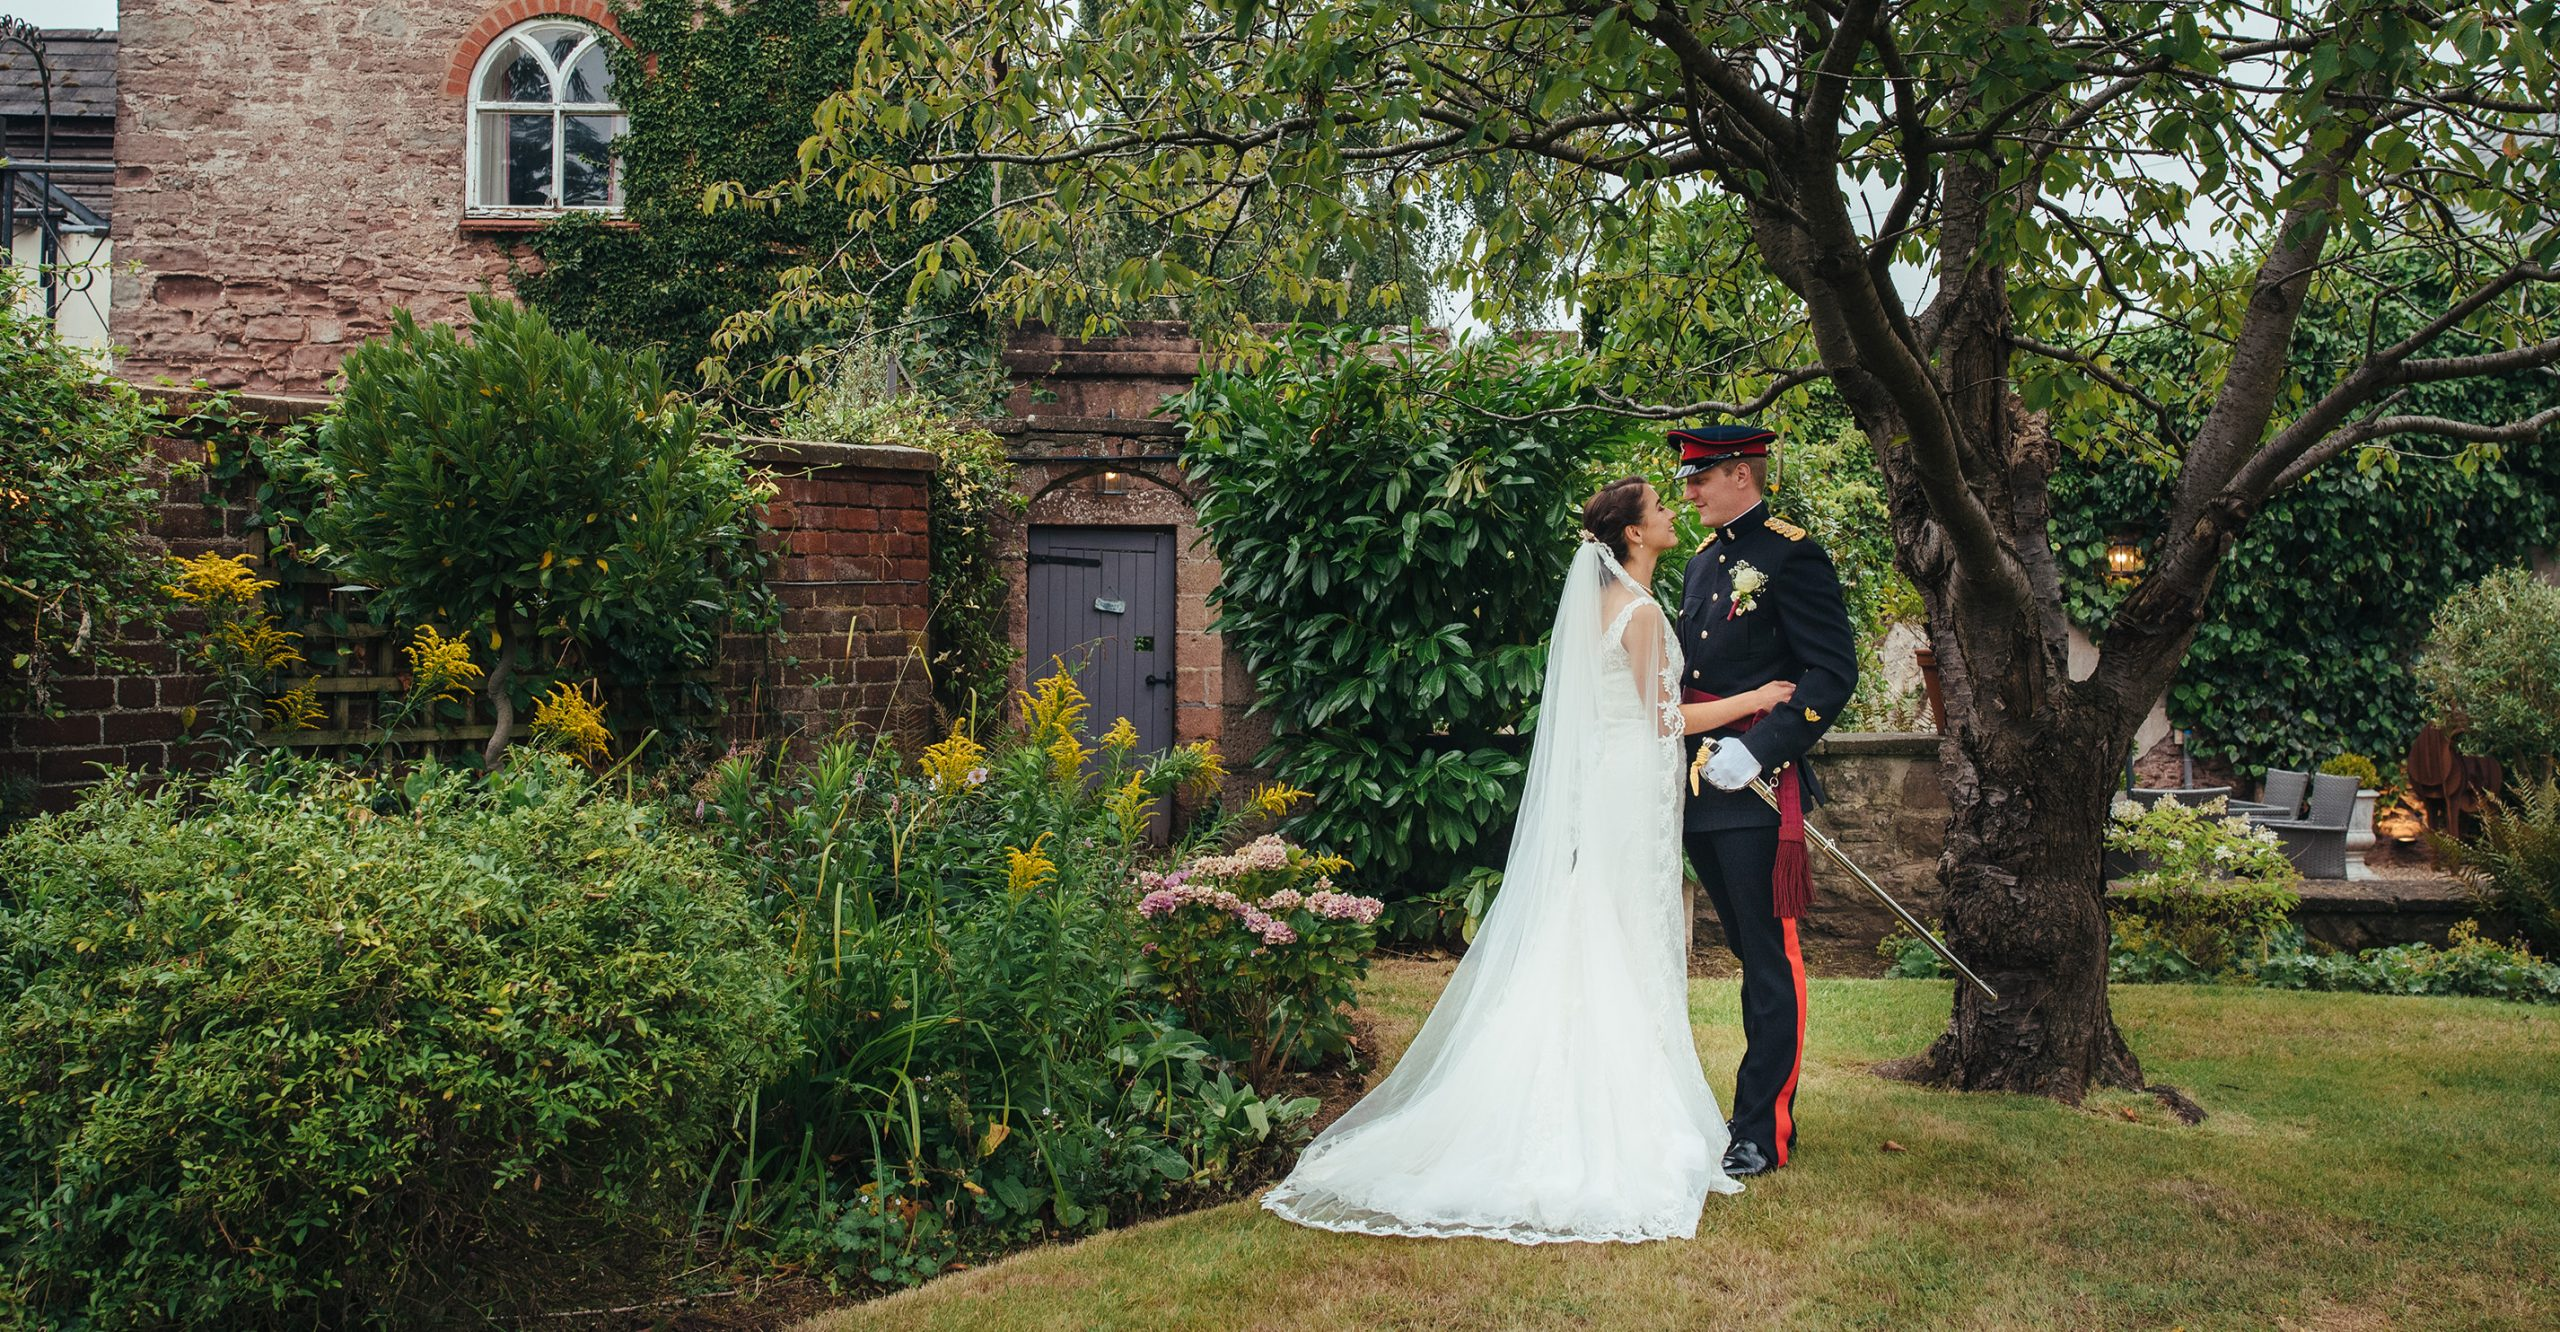 Bride and groom photo in the beautiful summer gardens at Glewstone Court